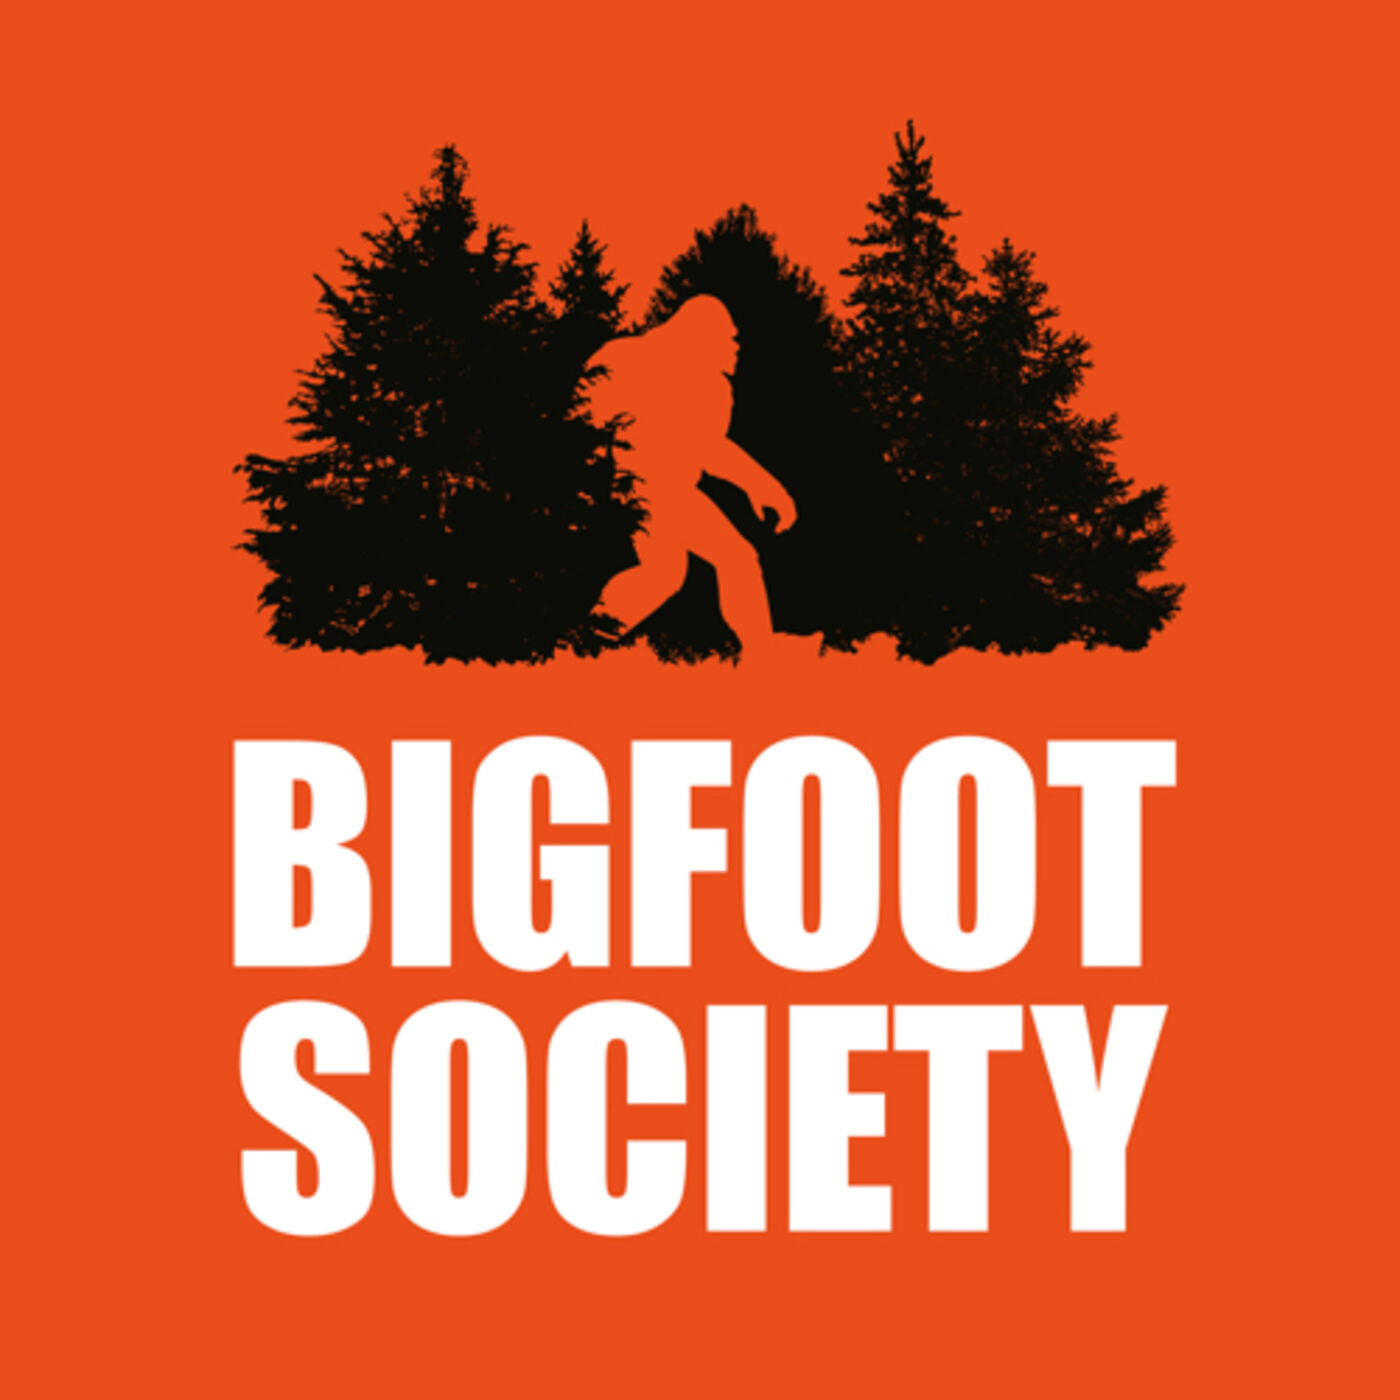 Jeremiah from Bigfoot Society interview